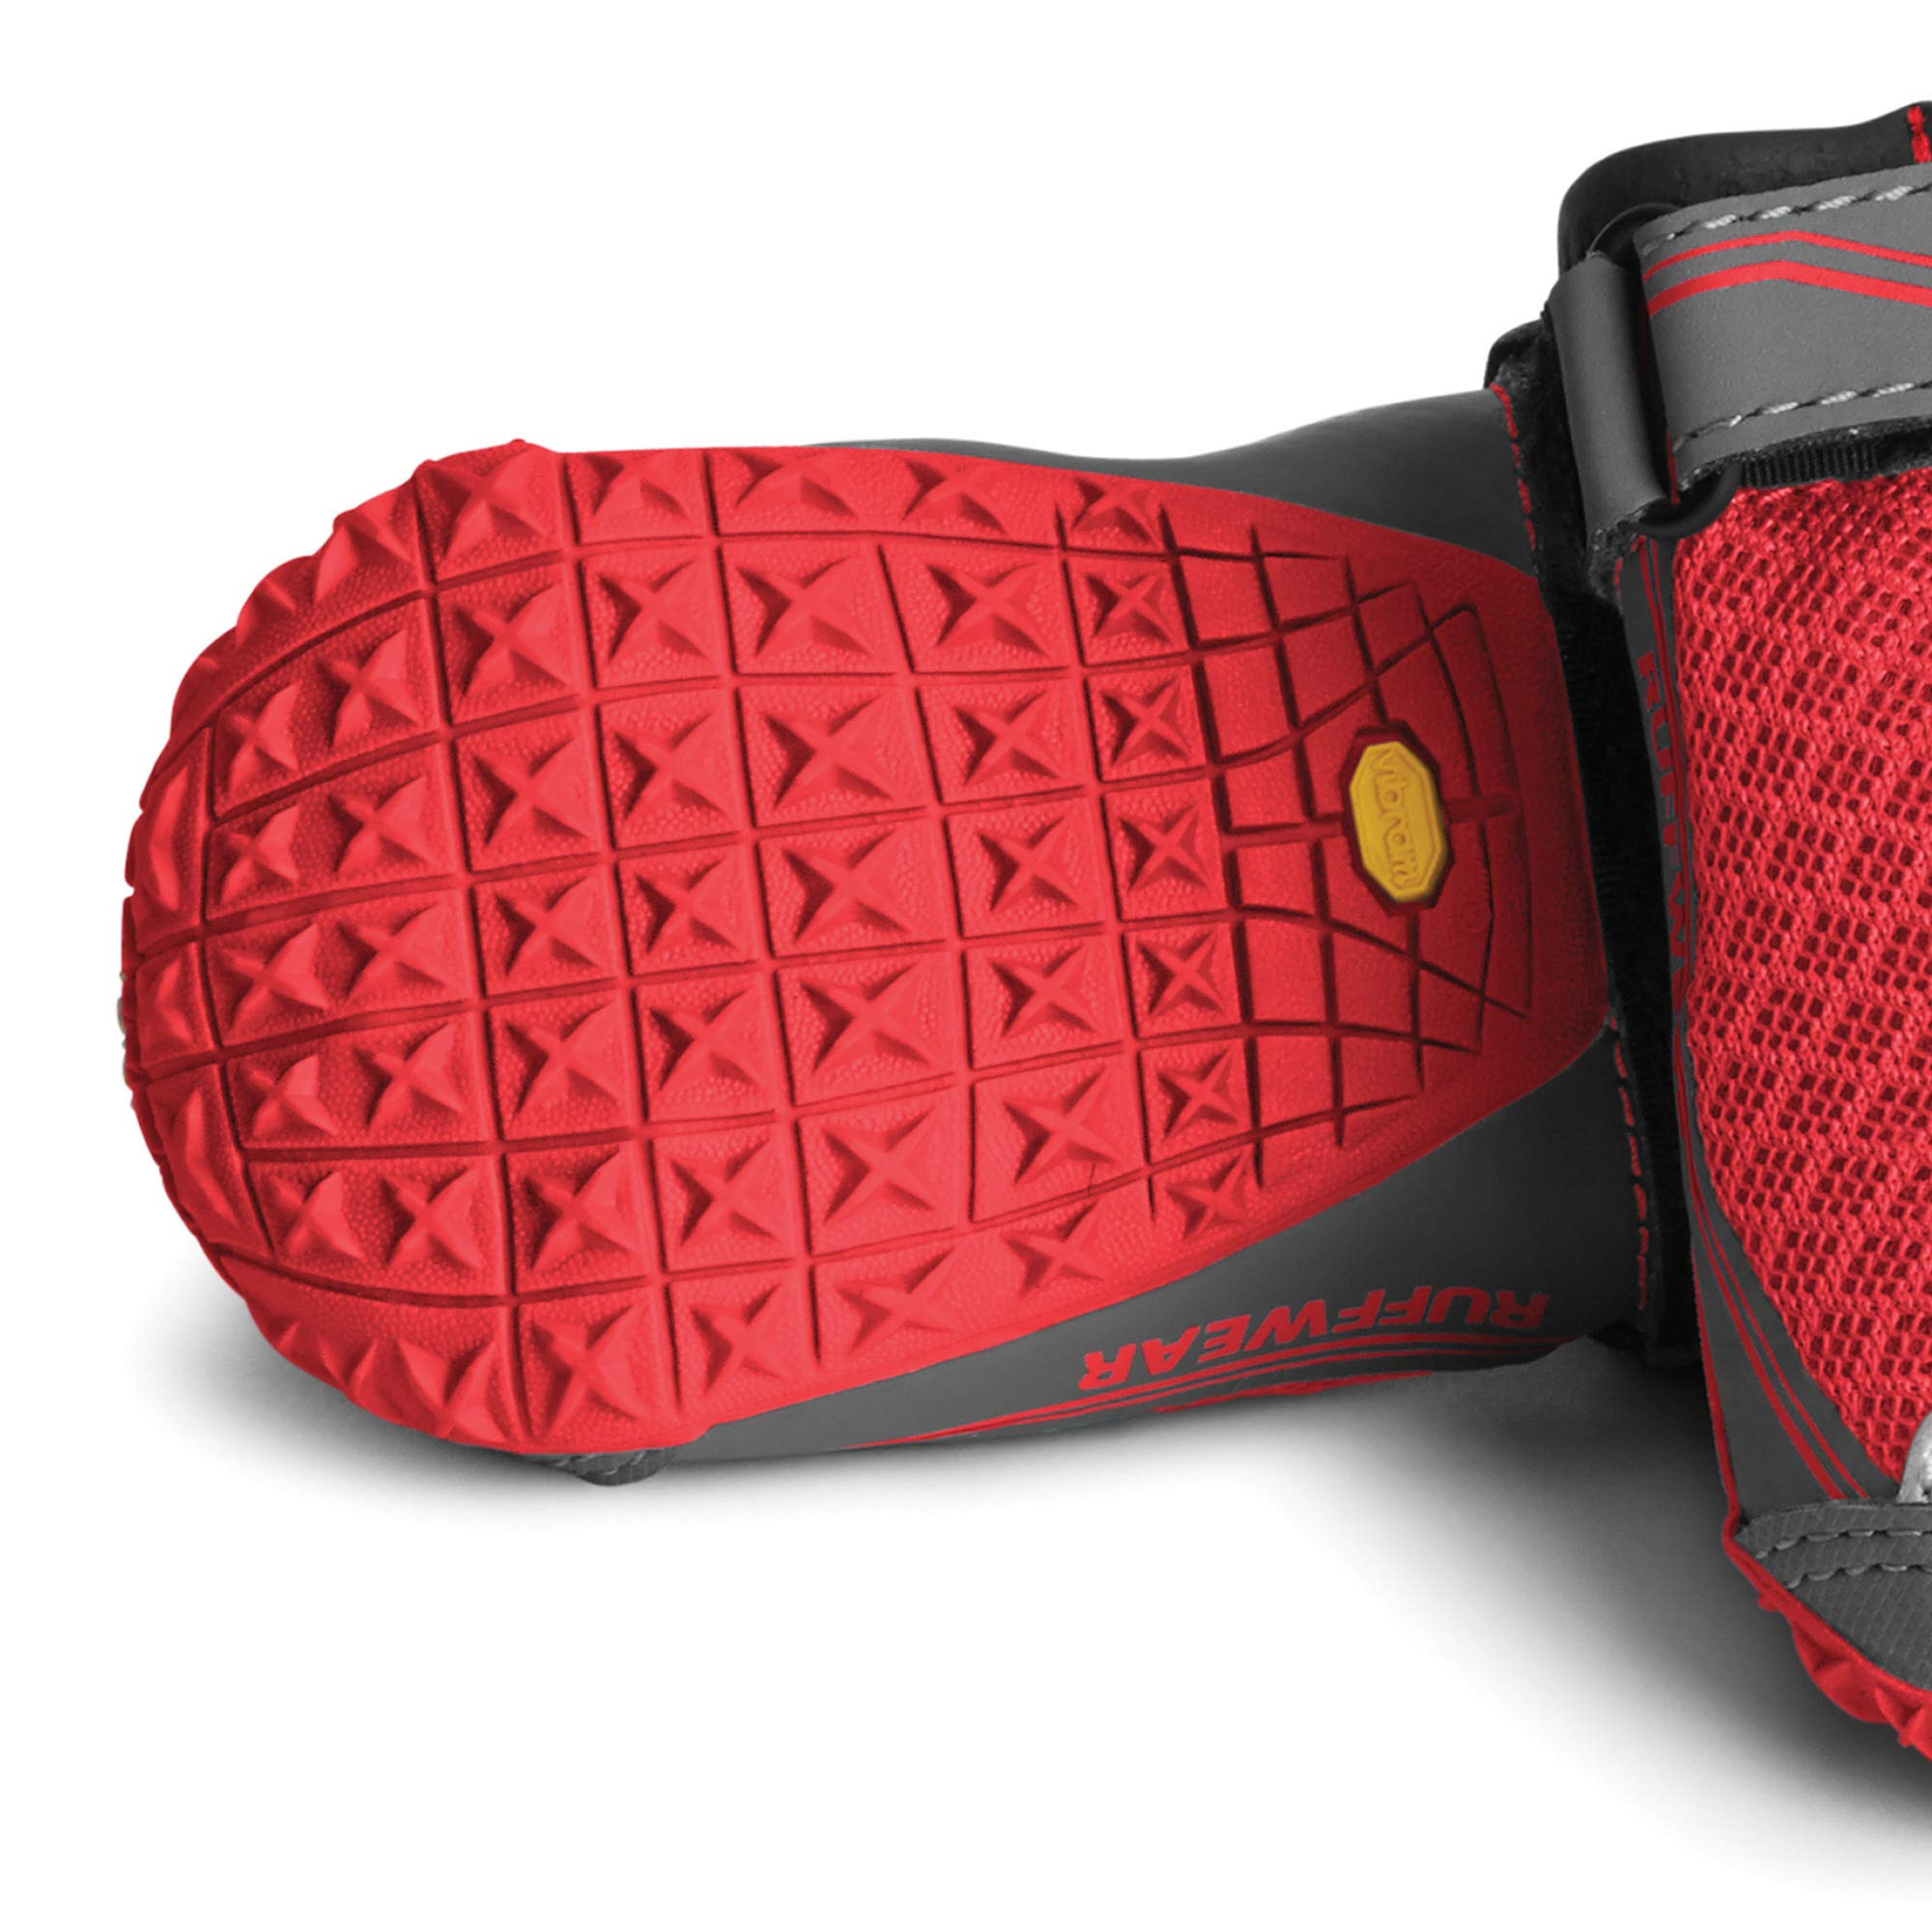 RUFFWEAR - Grip Trex, Red Currant, 2.25 in (4 Boots) by RUFFWEAR (Image #4)